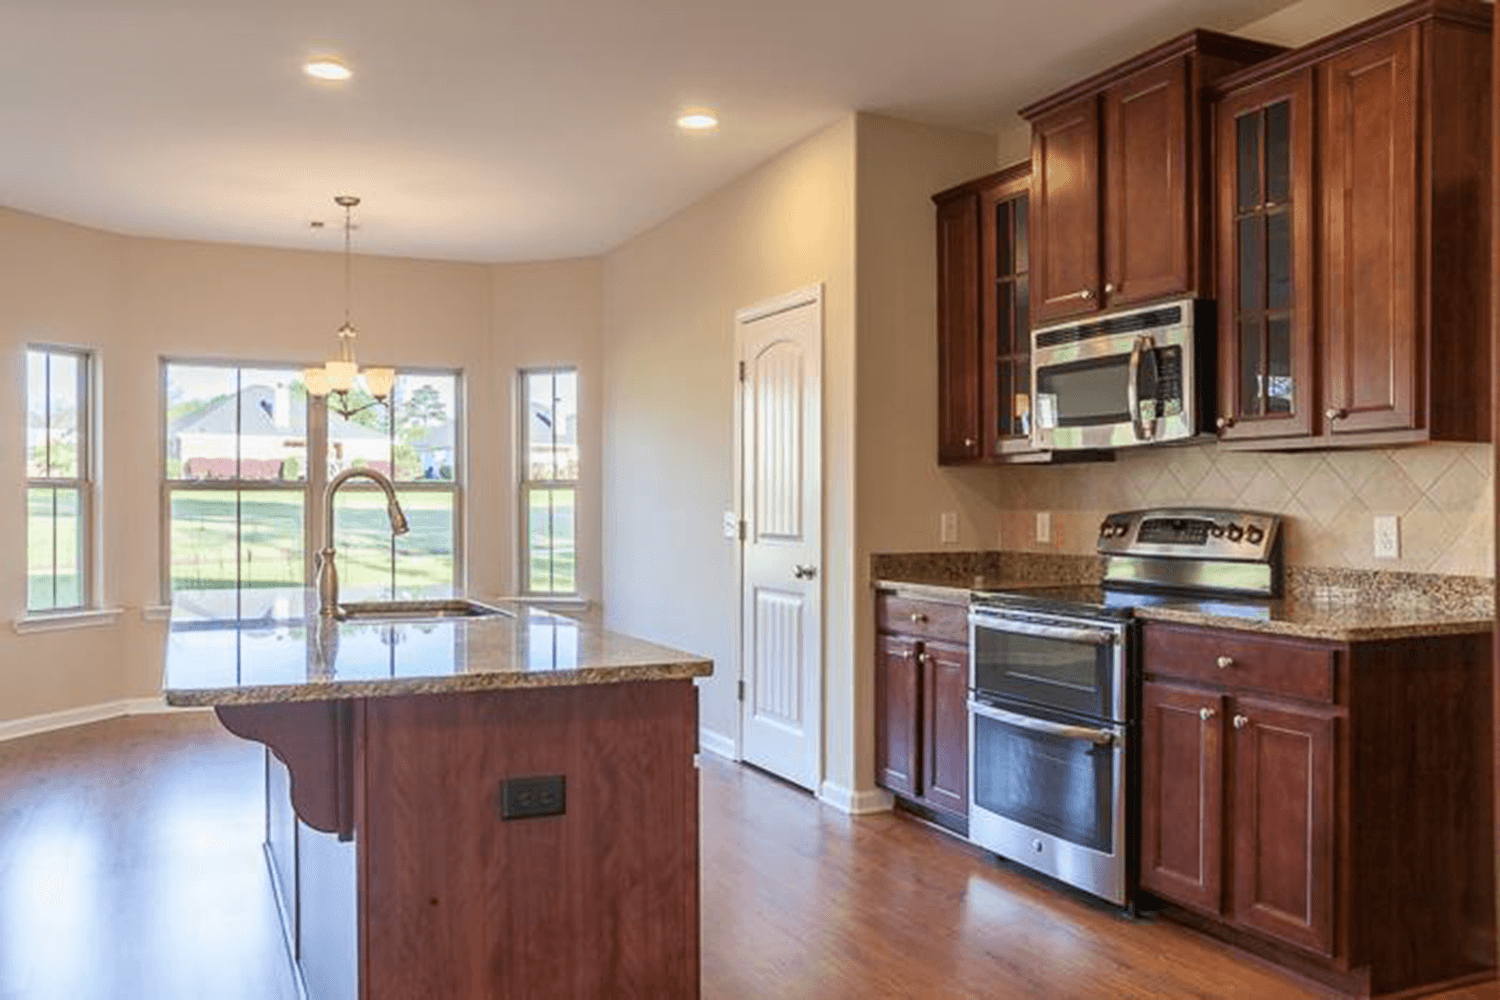 Kitchen featured in The Grayson (Build on your lot) By Lamar Smith Homes in Savannah, GA